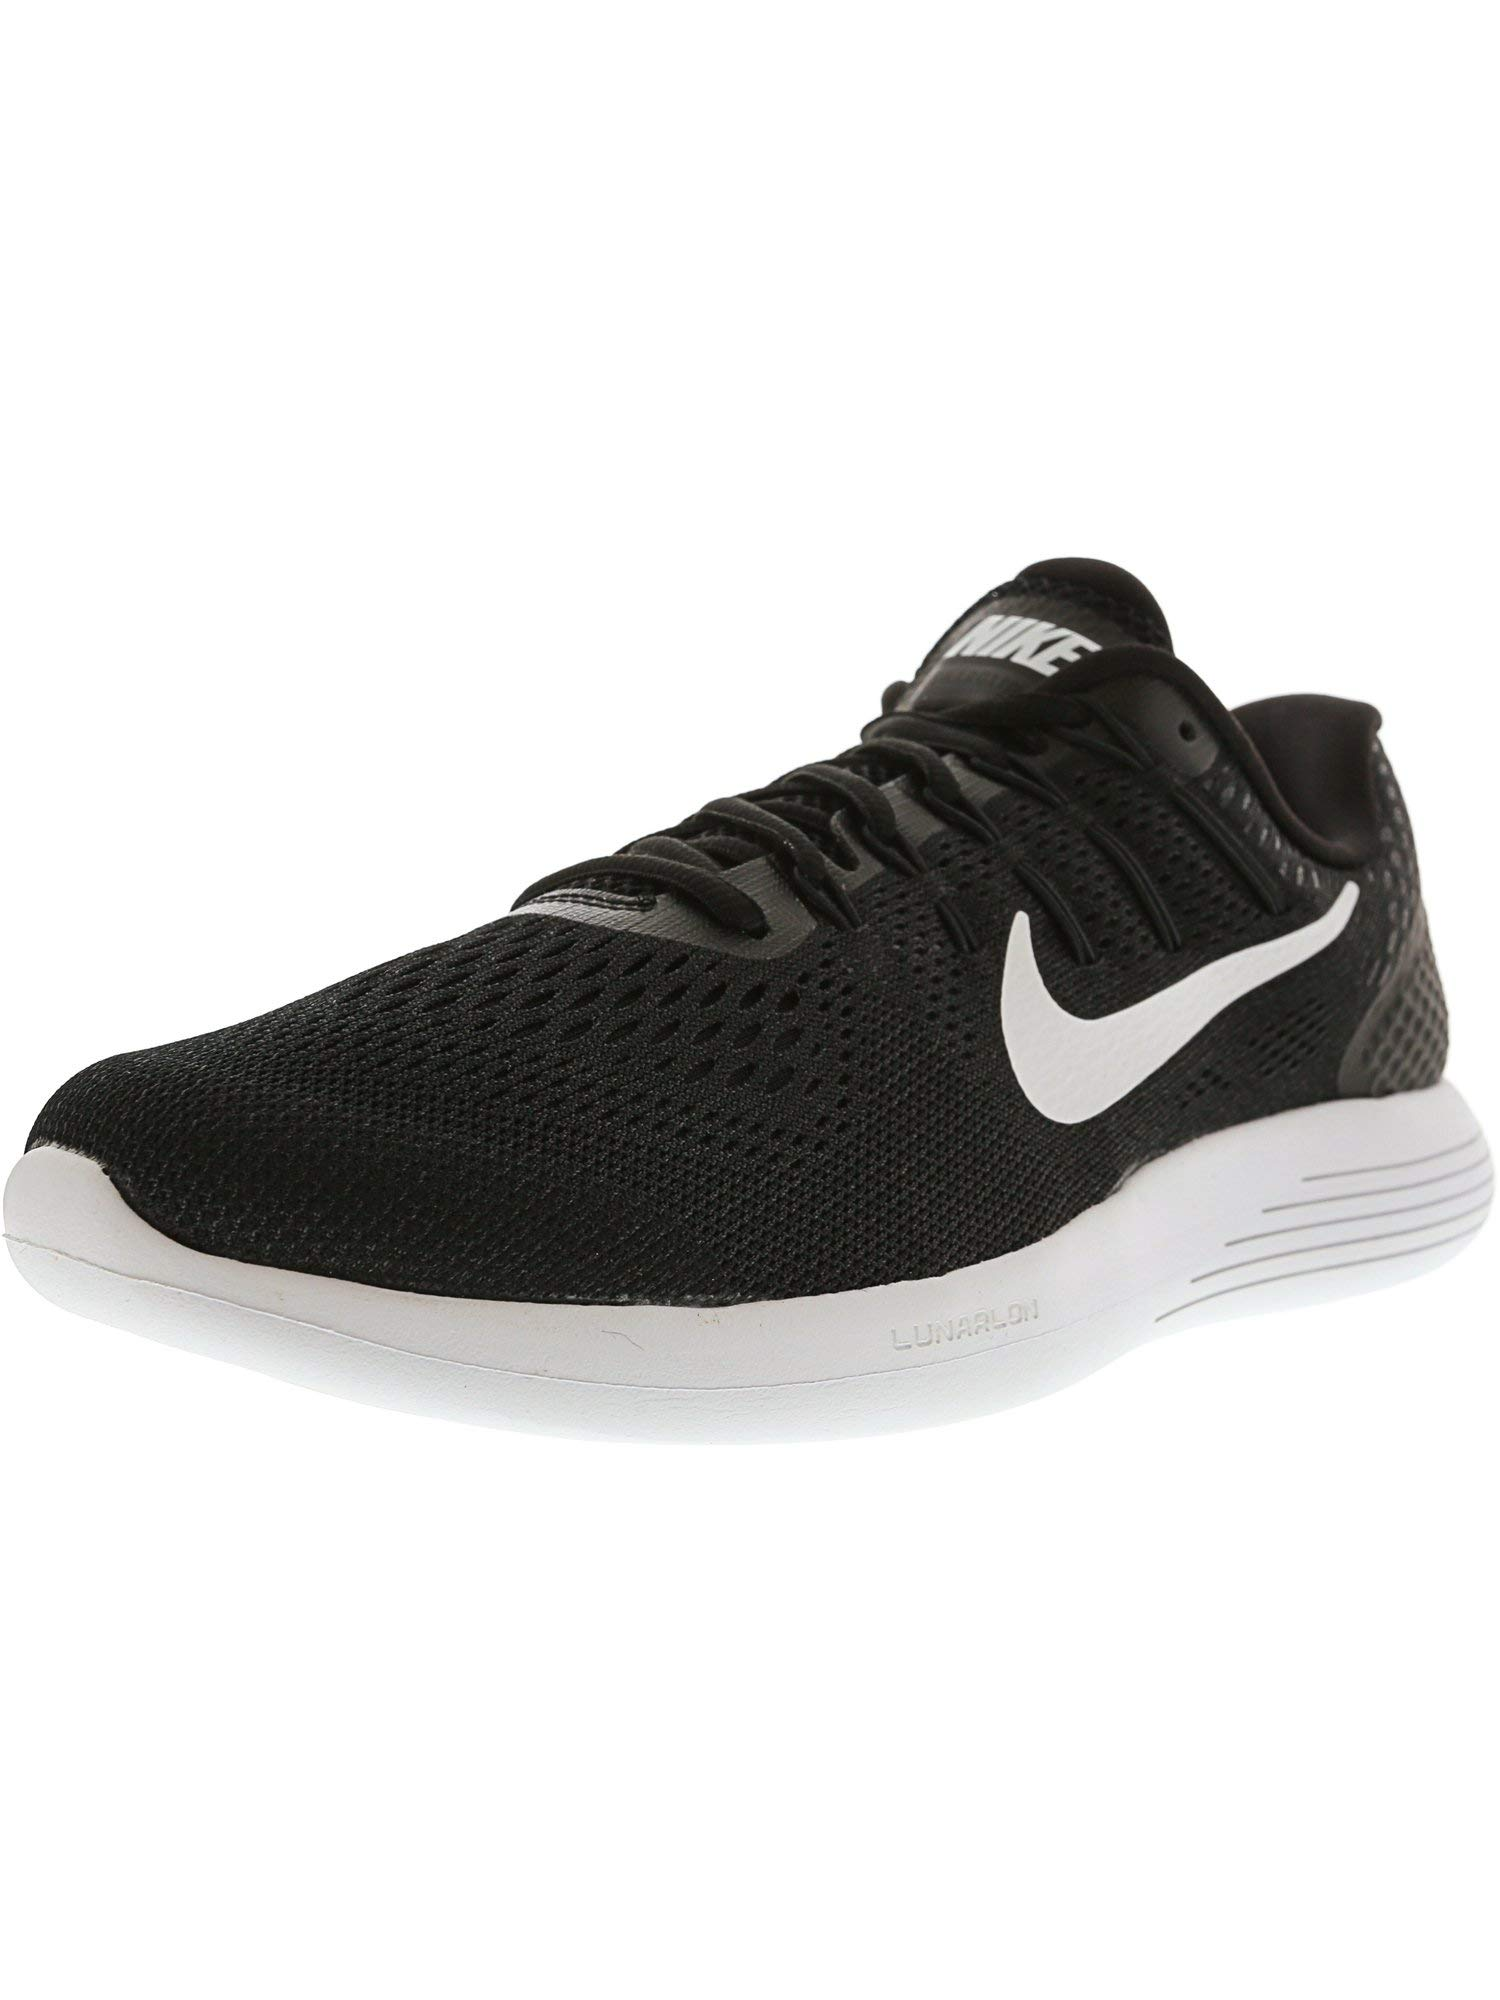 3736881ad23b85 Galleon - Nike Men s Lunarglide 8 Running Shoe Black White Anthracite Size  10.5 M US